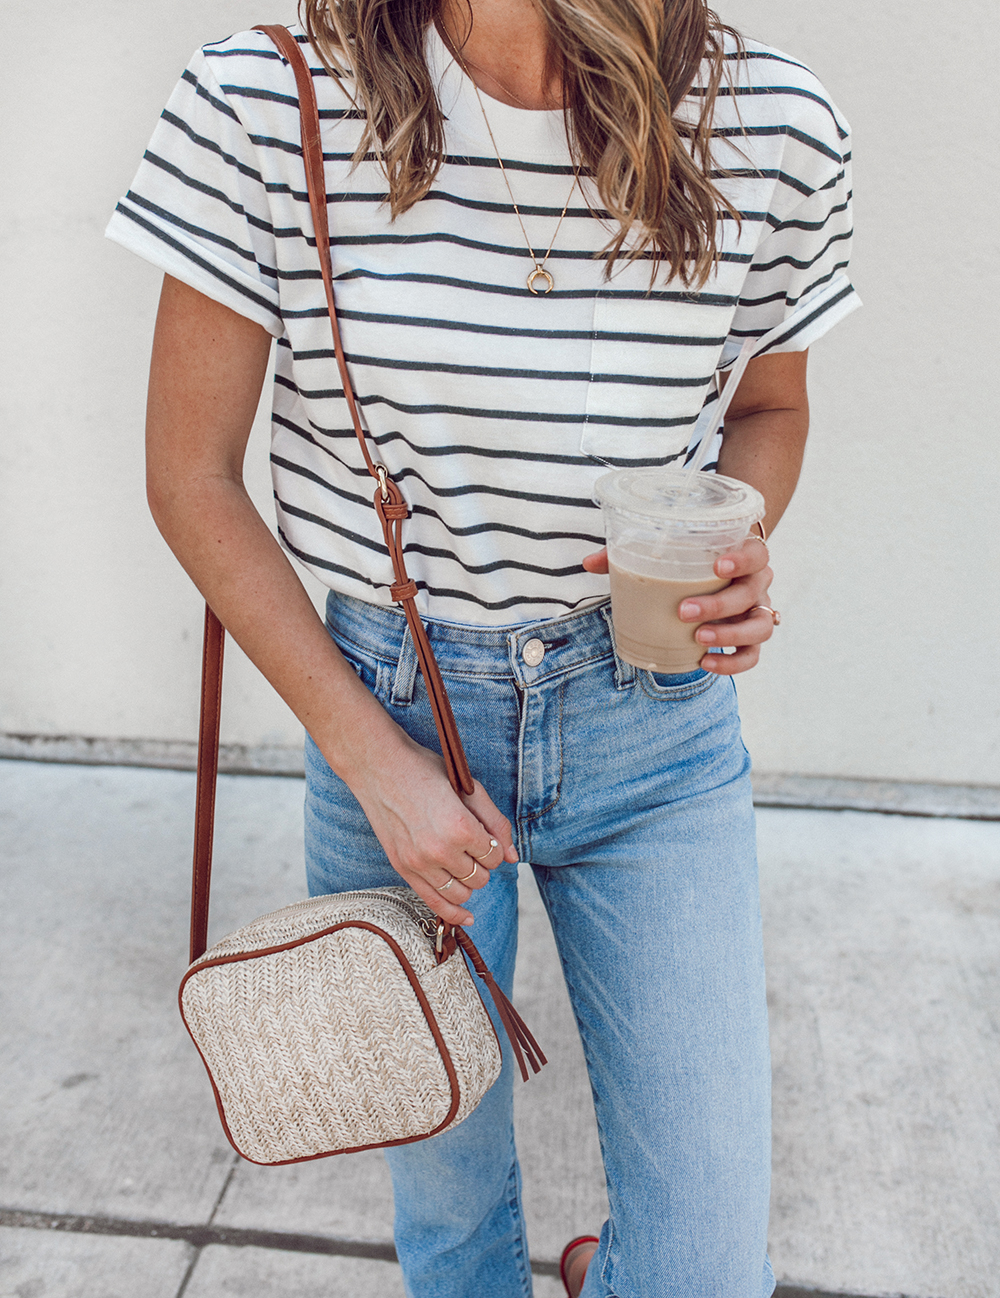 livvyland-blog-olivia-watson-sole-society-red-sandal-flats-spring-summer-outfit-idea-style-austin-texas-fashion-blogger-striped-shirt-2